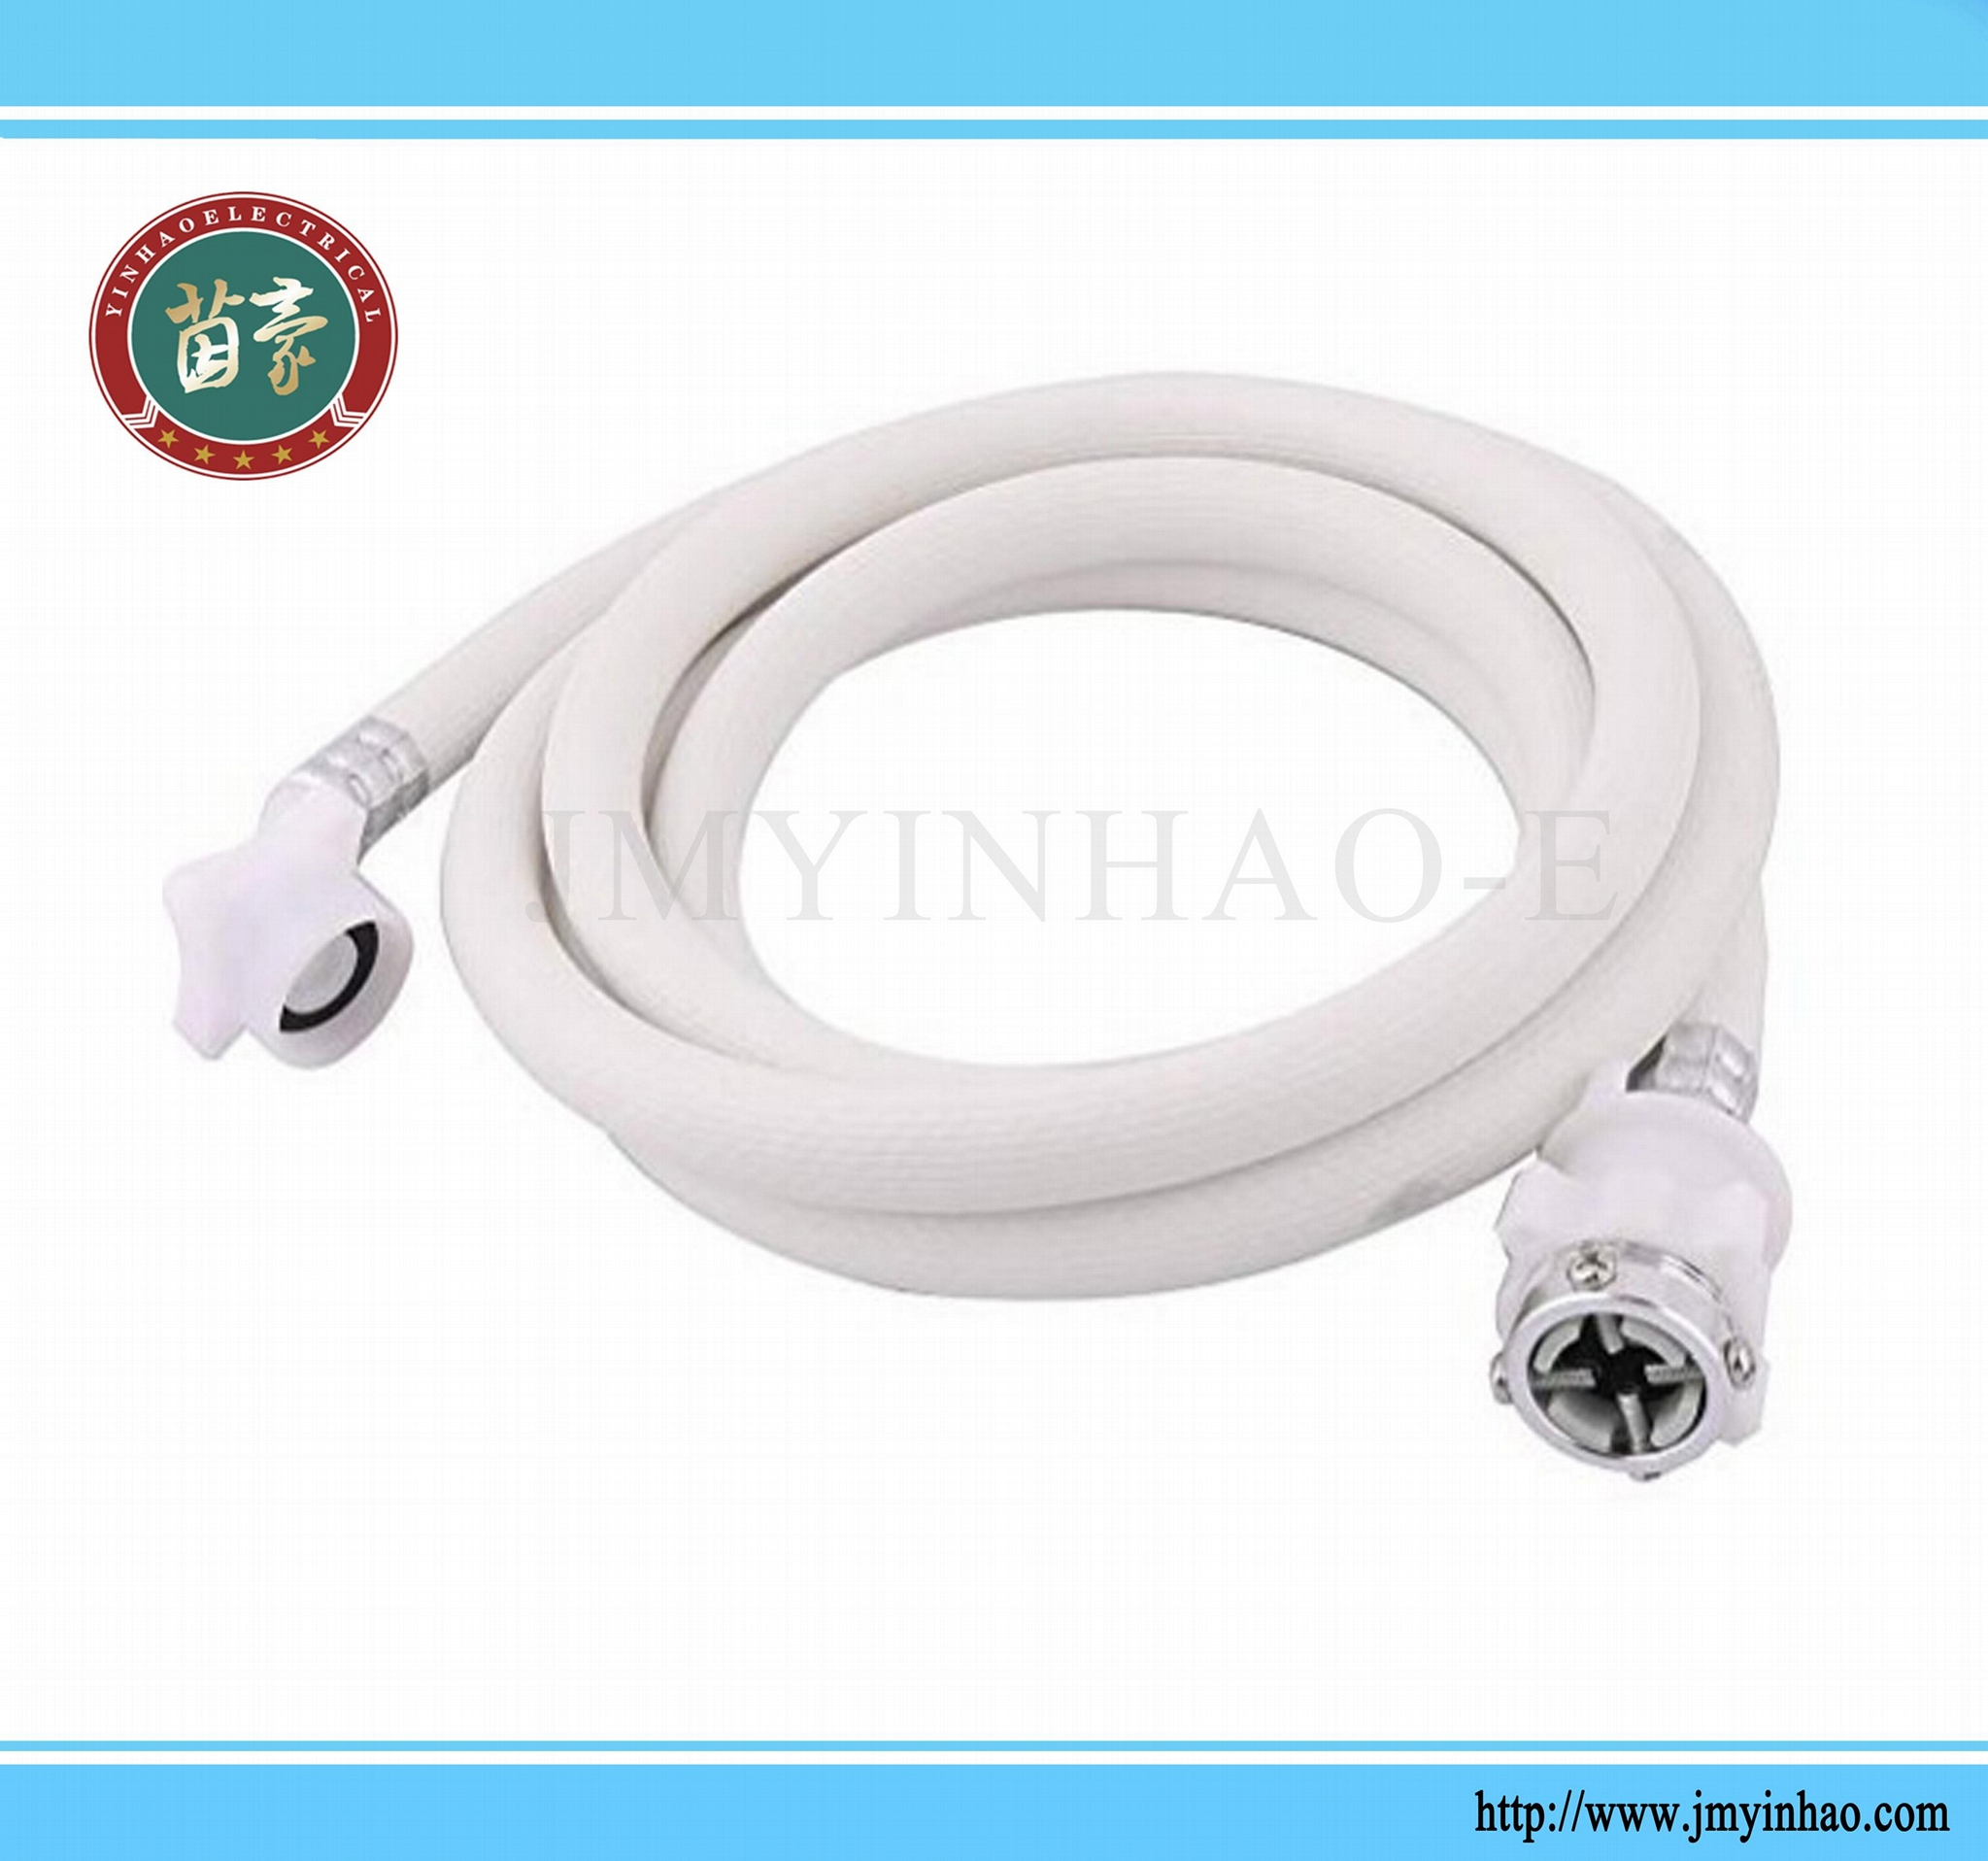 PVC inlet pipe for washing machine 1